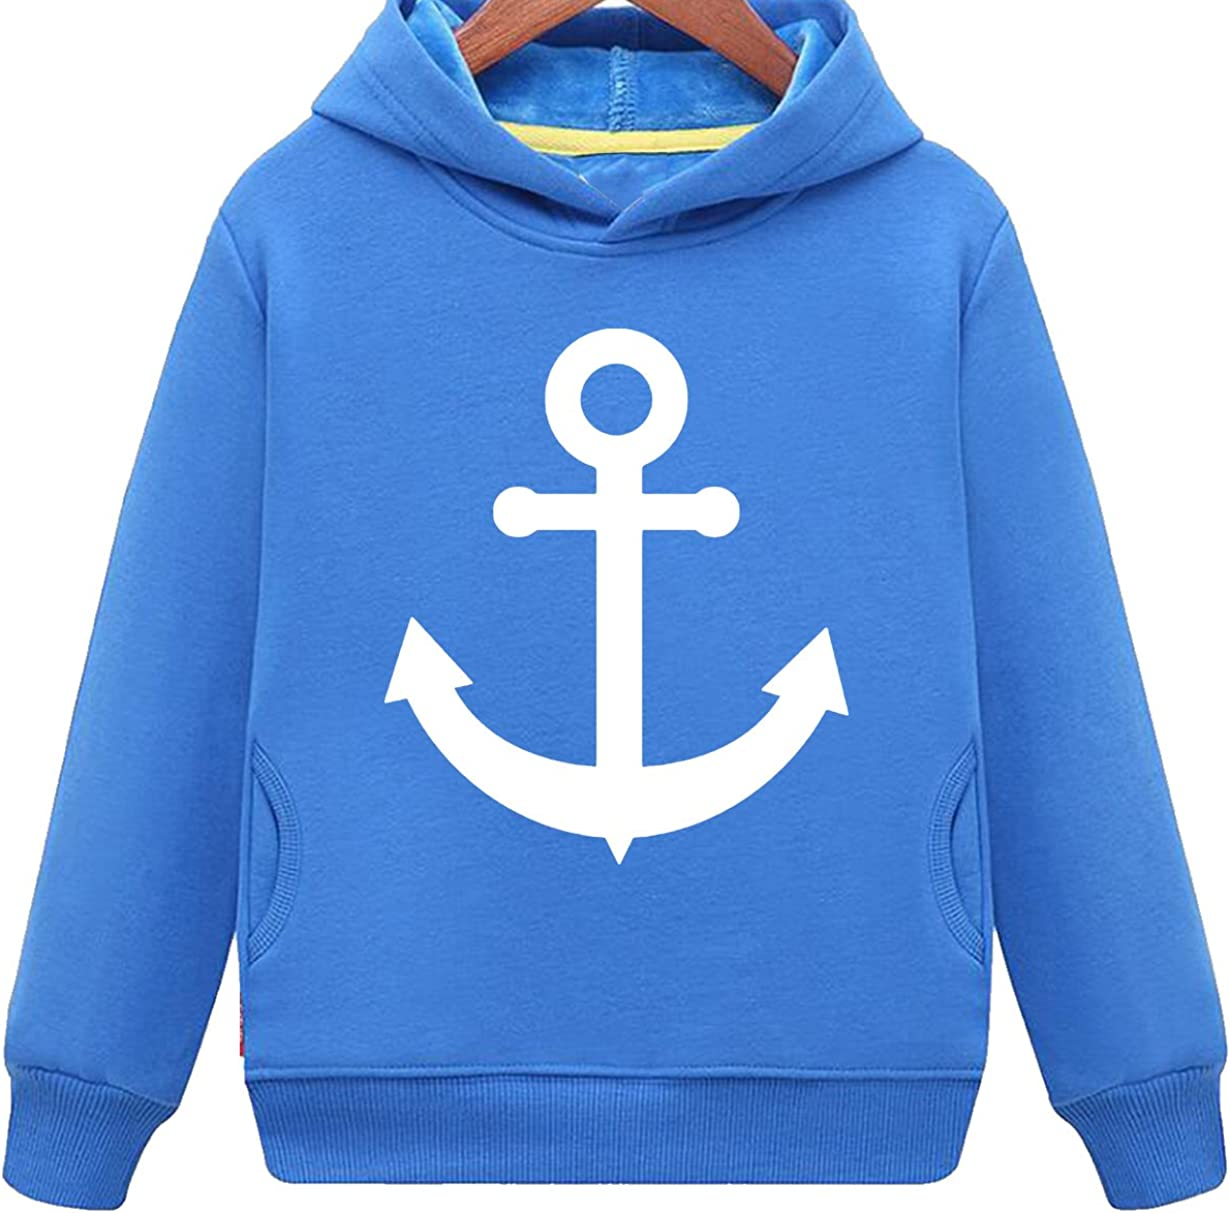 Kids Two Pockets Fashion Boat Anchor Print Casual Hoodie